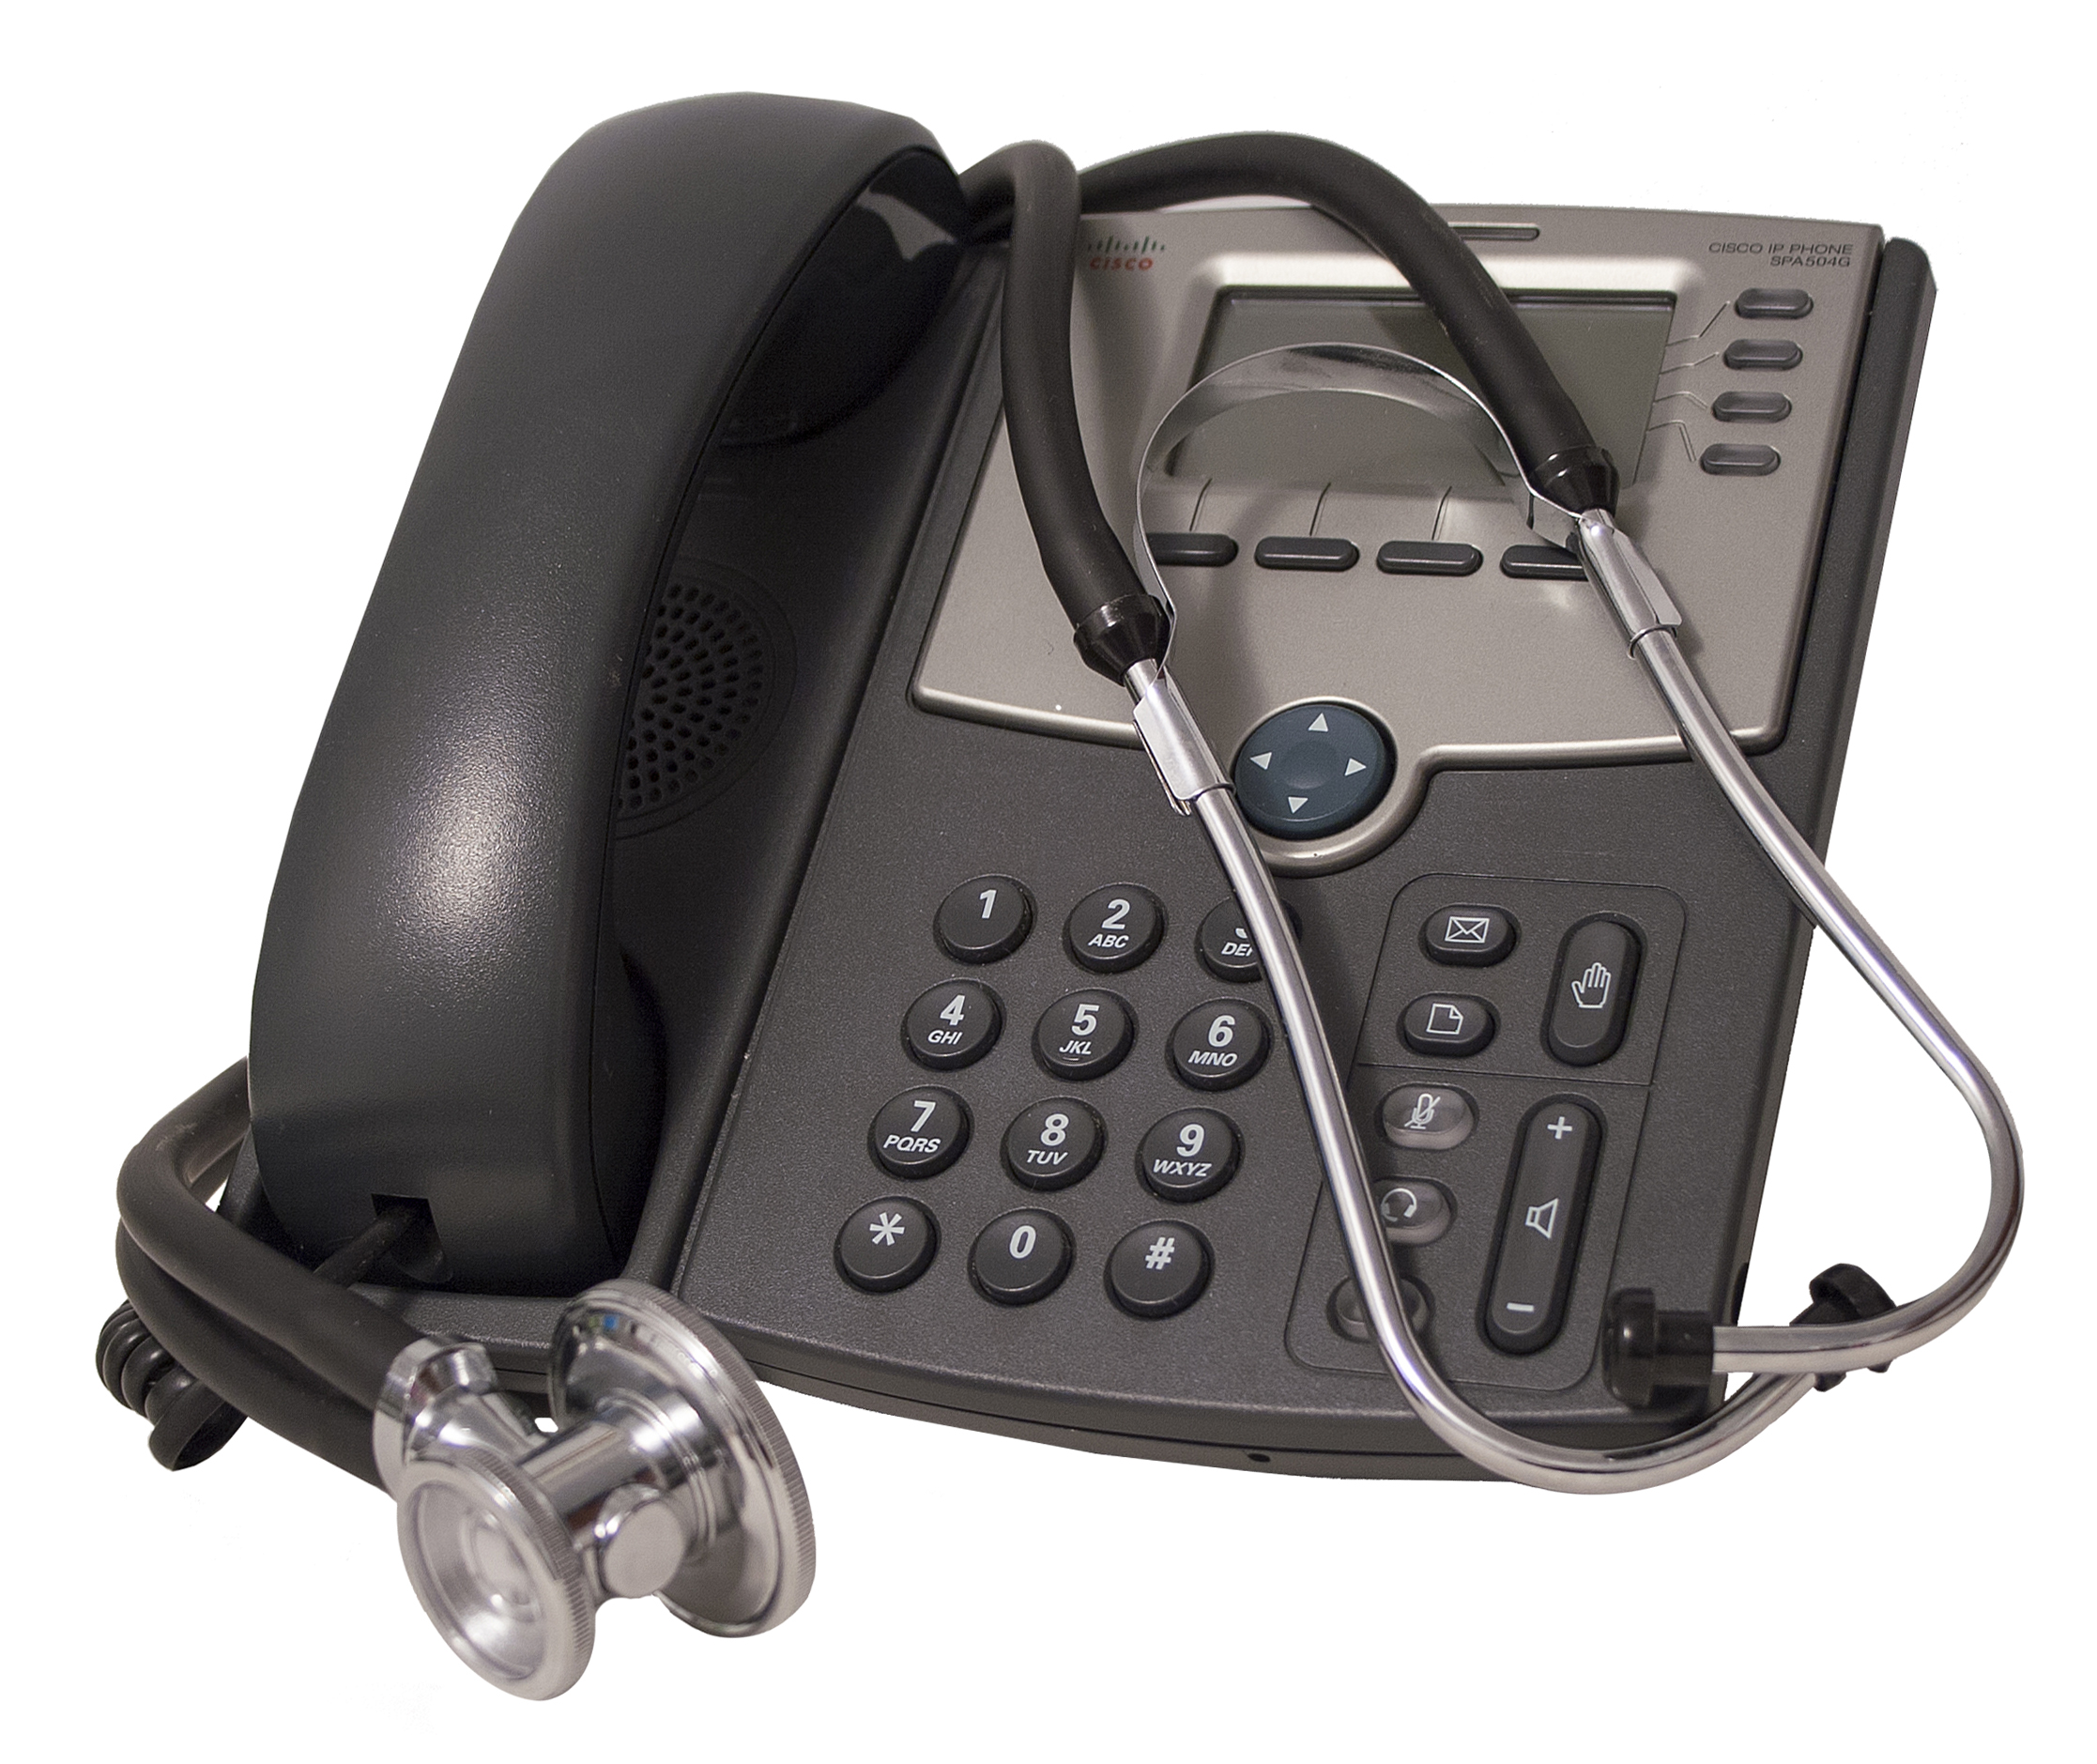 What is voip and how you - Voip Can Help Meet The Unique Communication Needs Of Medical Practices